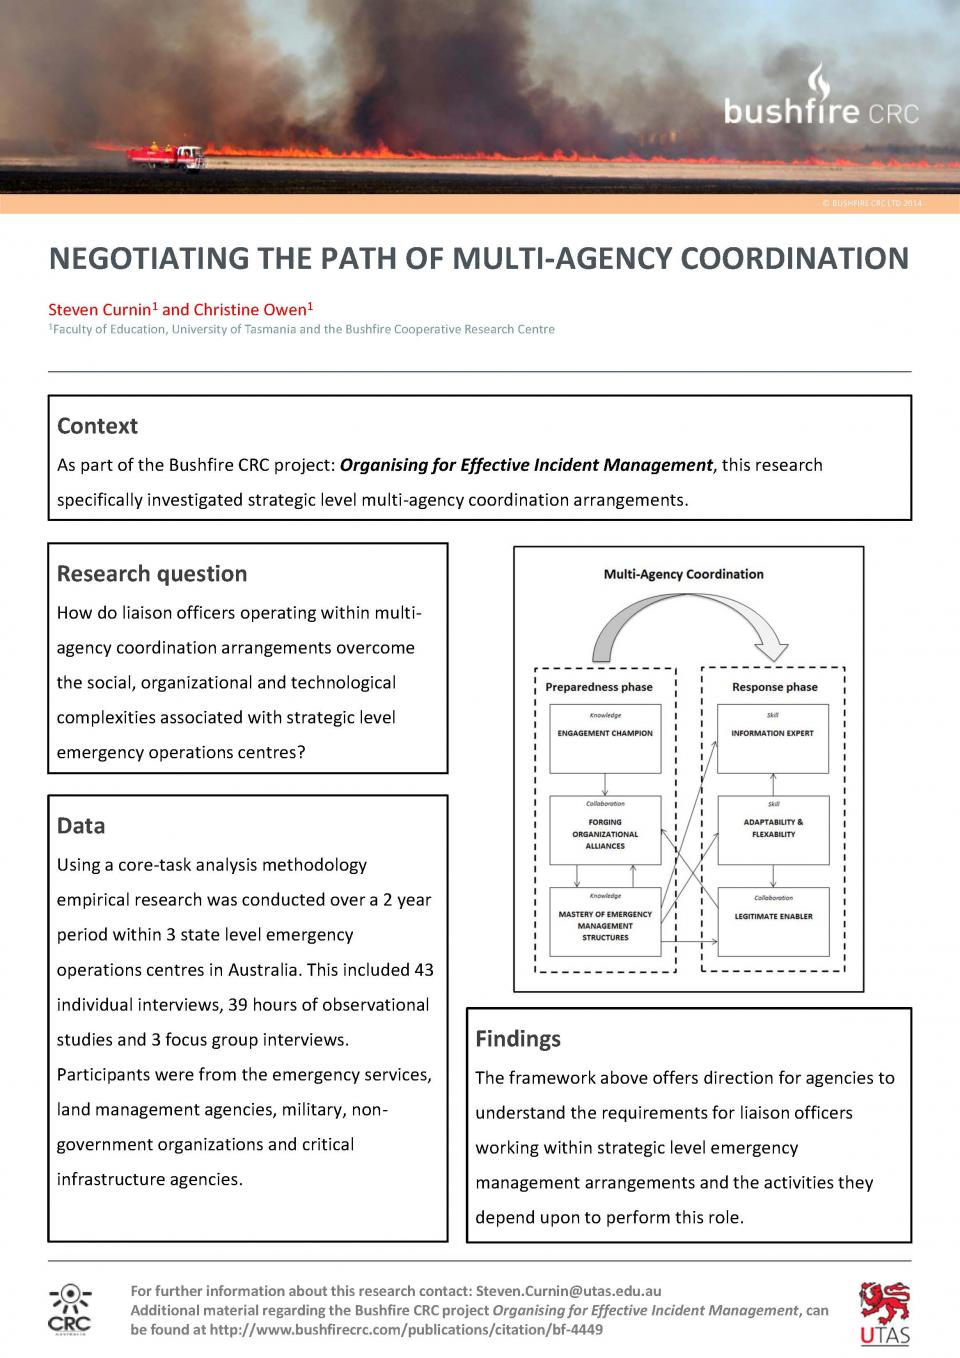 Negotiating the path of multi-agency coordination